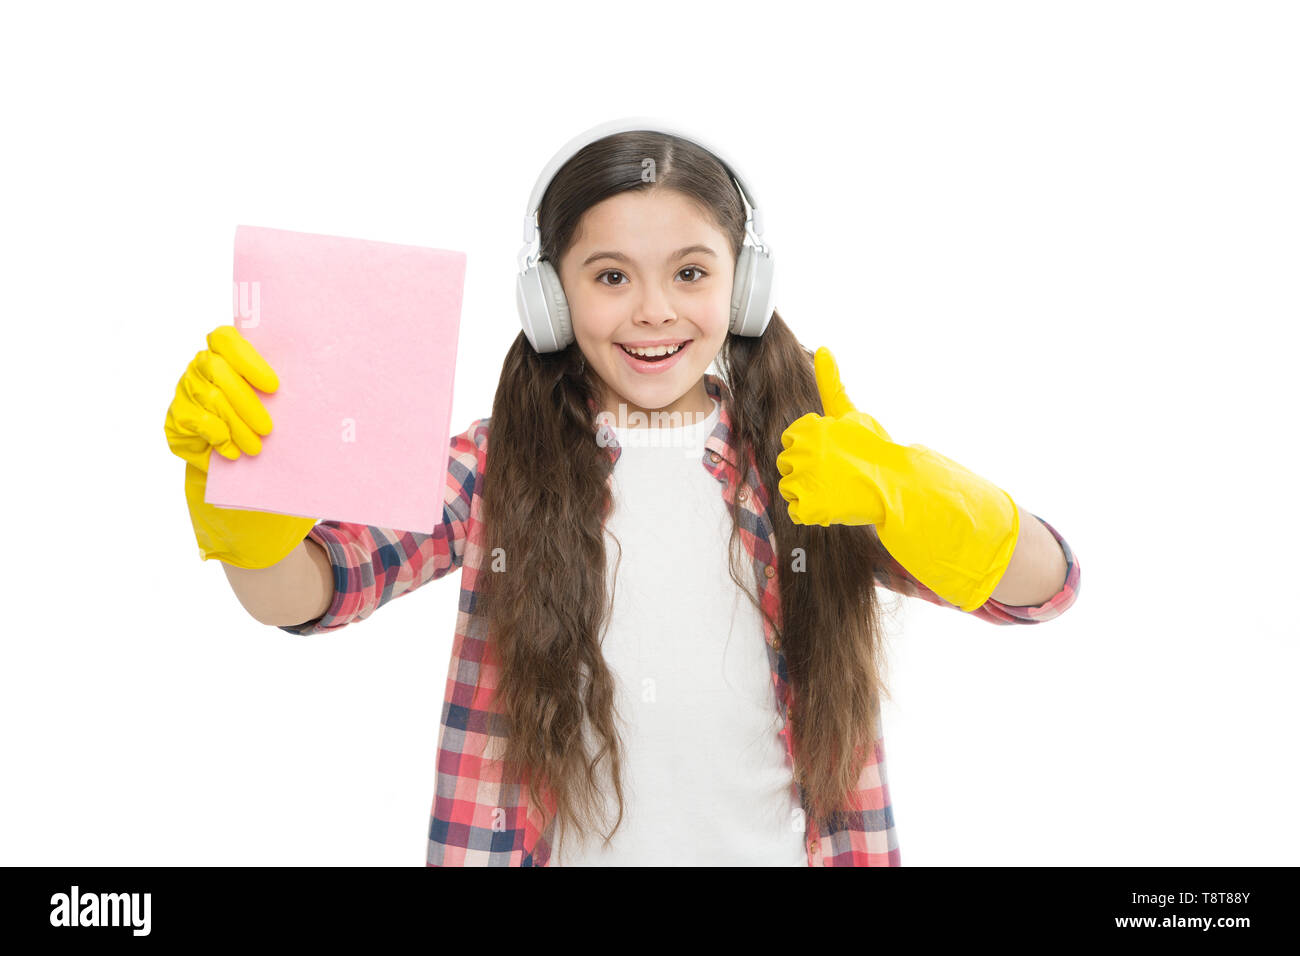 Cleaning supplies. Anti allergen cleaning products. Let music move you. Girl headphones and gloves cleaning. Make household more joyful. Have fun. Cleaning worries away. Everything in its place. - Stock Image